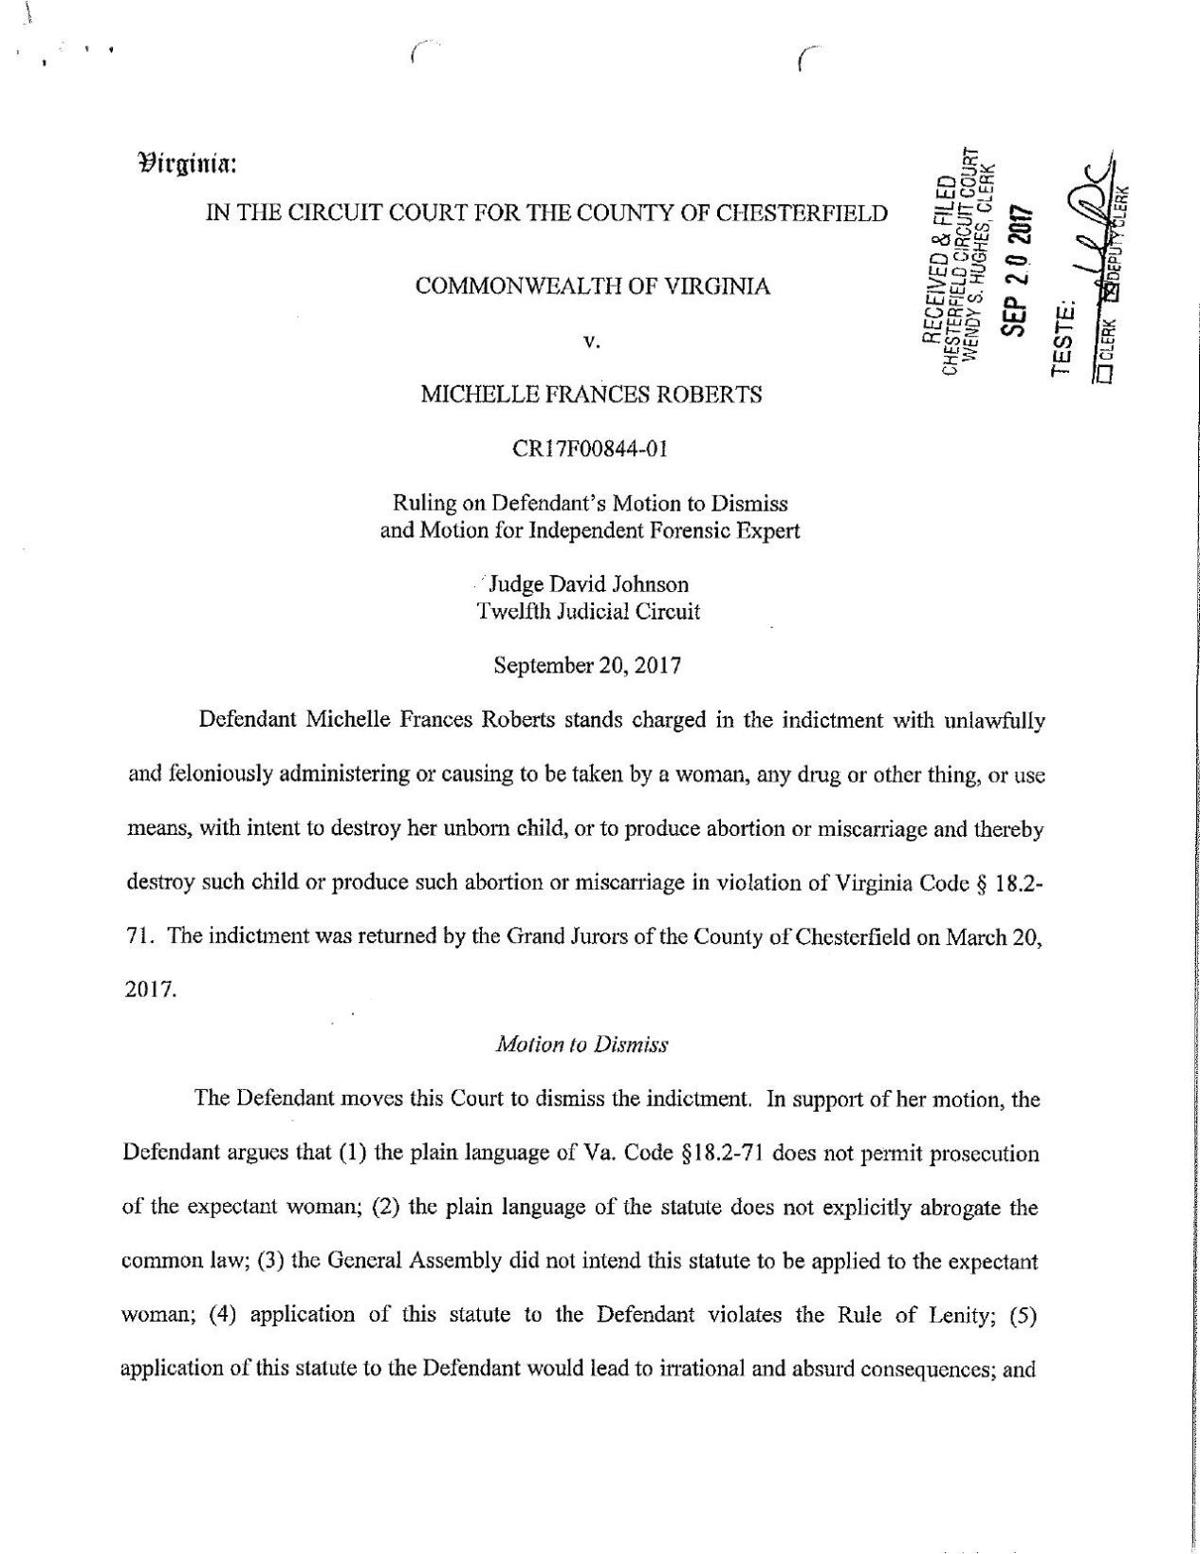 Judge David Johnson's ruling in the Michelle Frances Roberts case